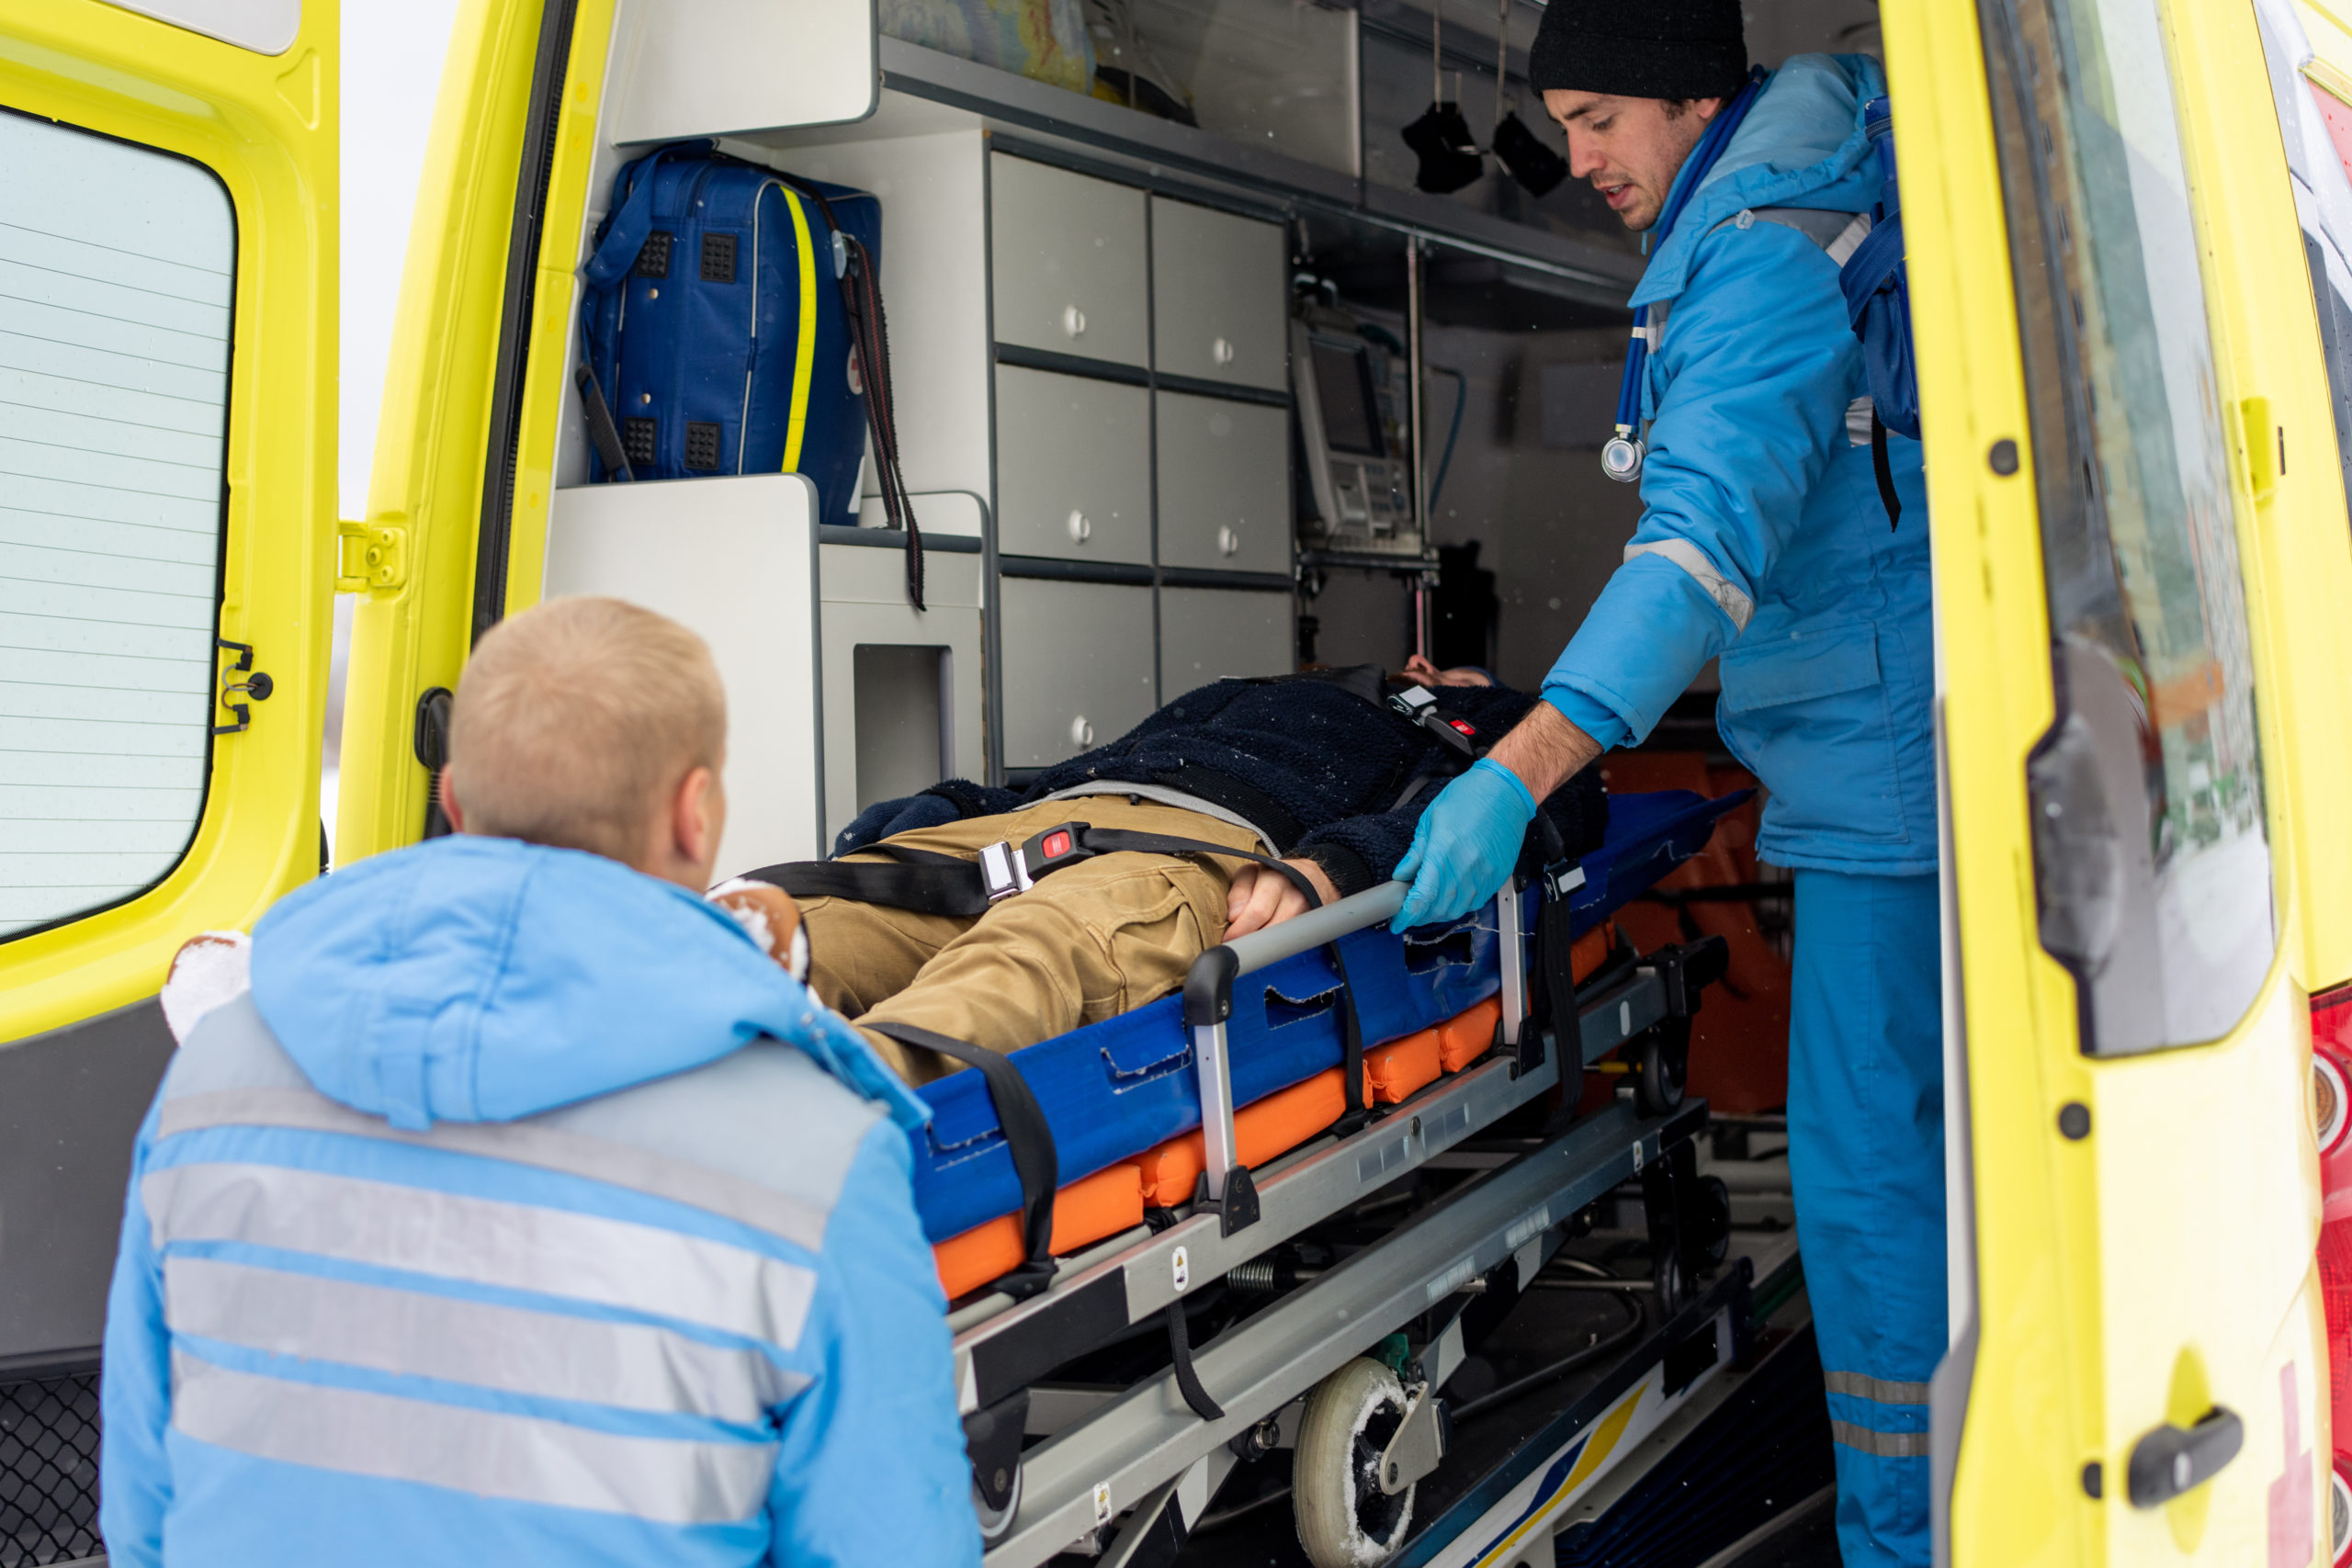 Paramedics in uniform pushing stretcher with fixed unconscious man into ambulance car to get him to hospital